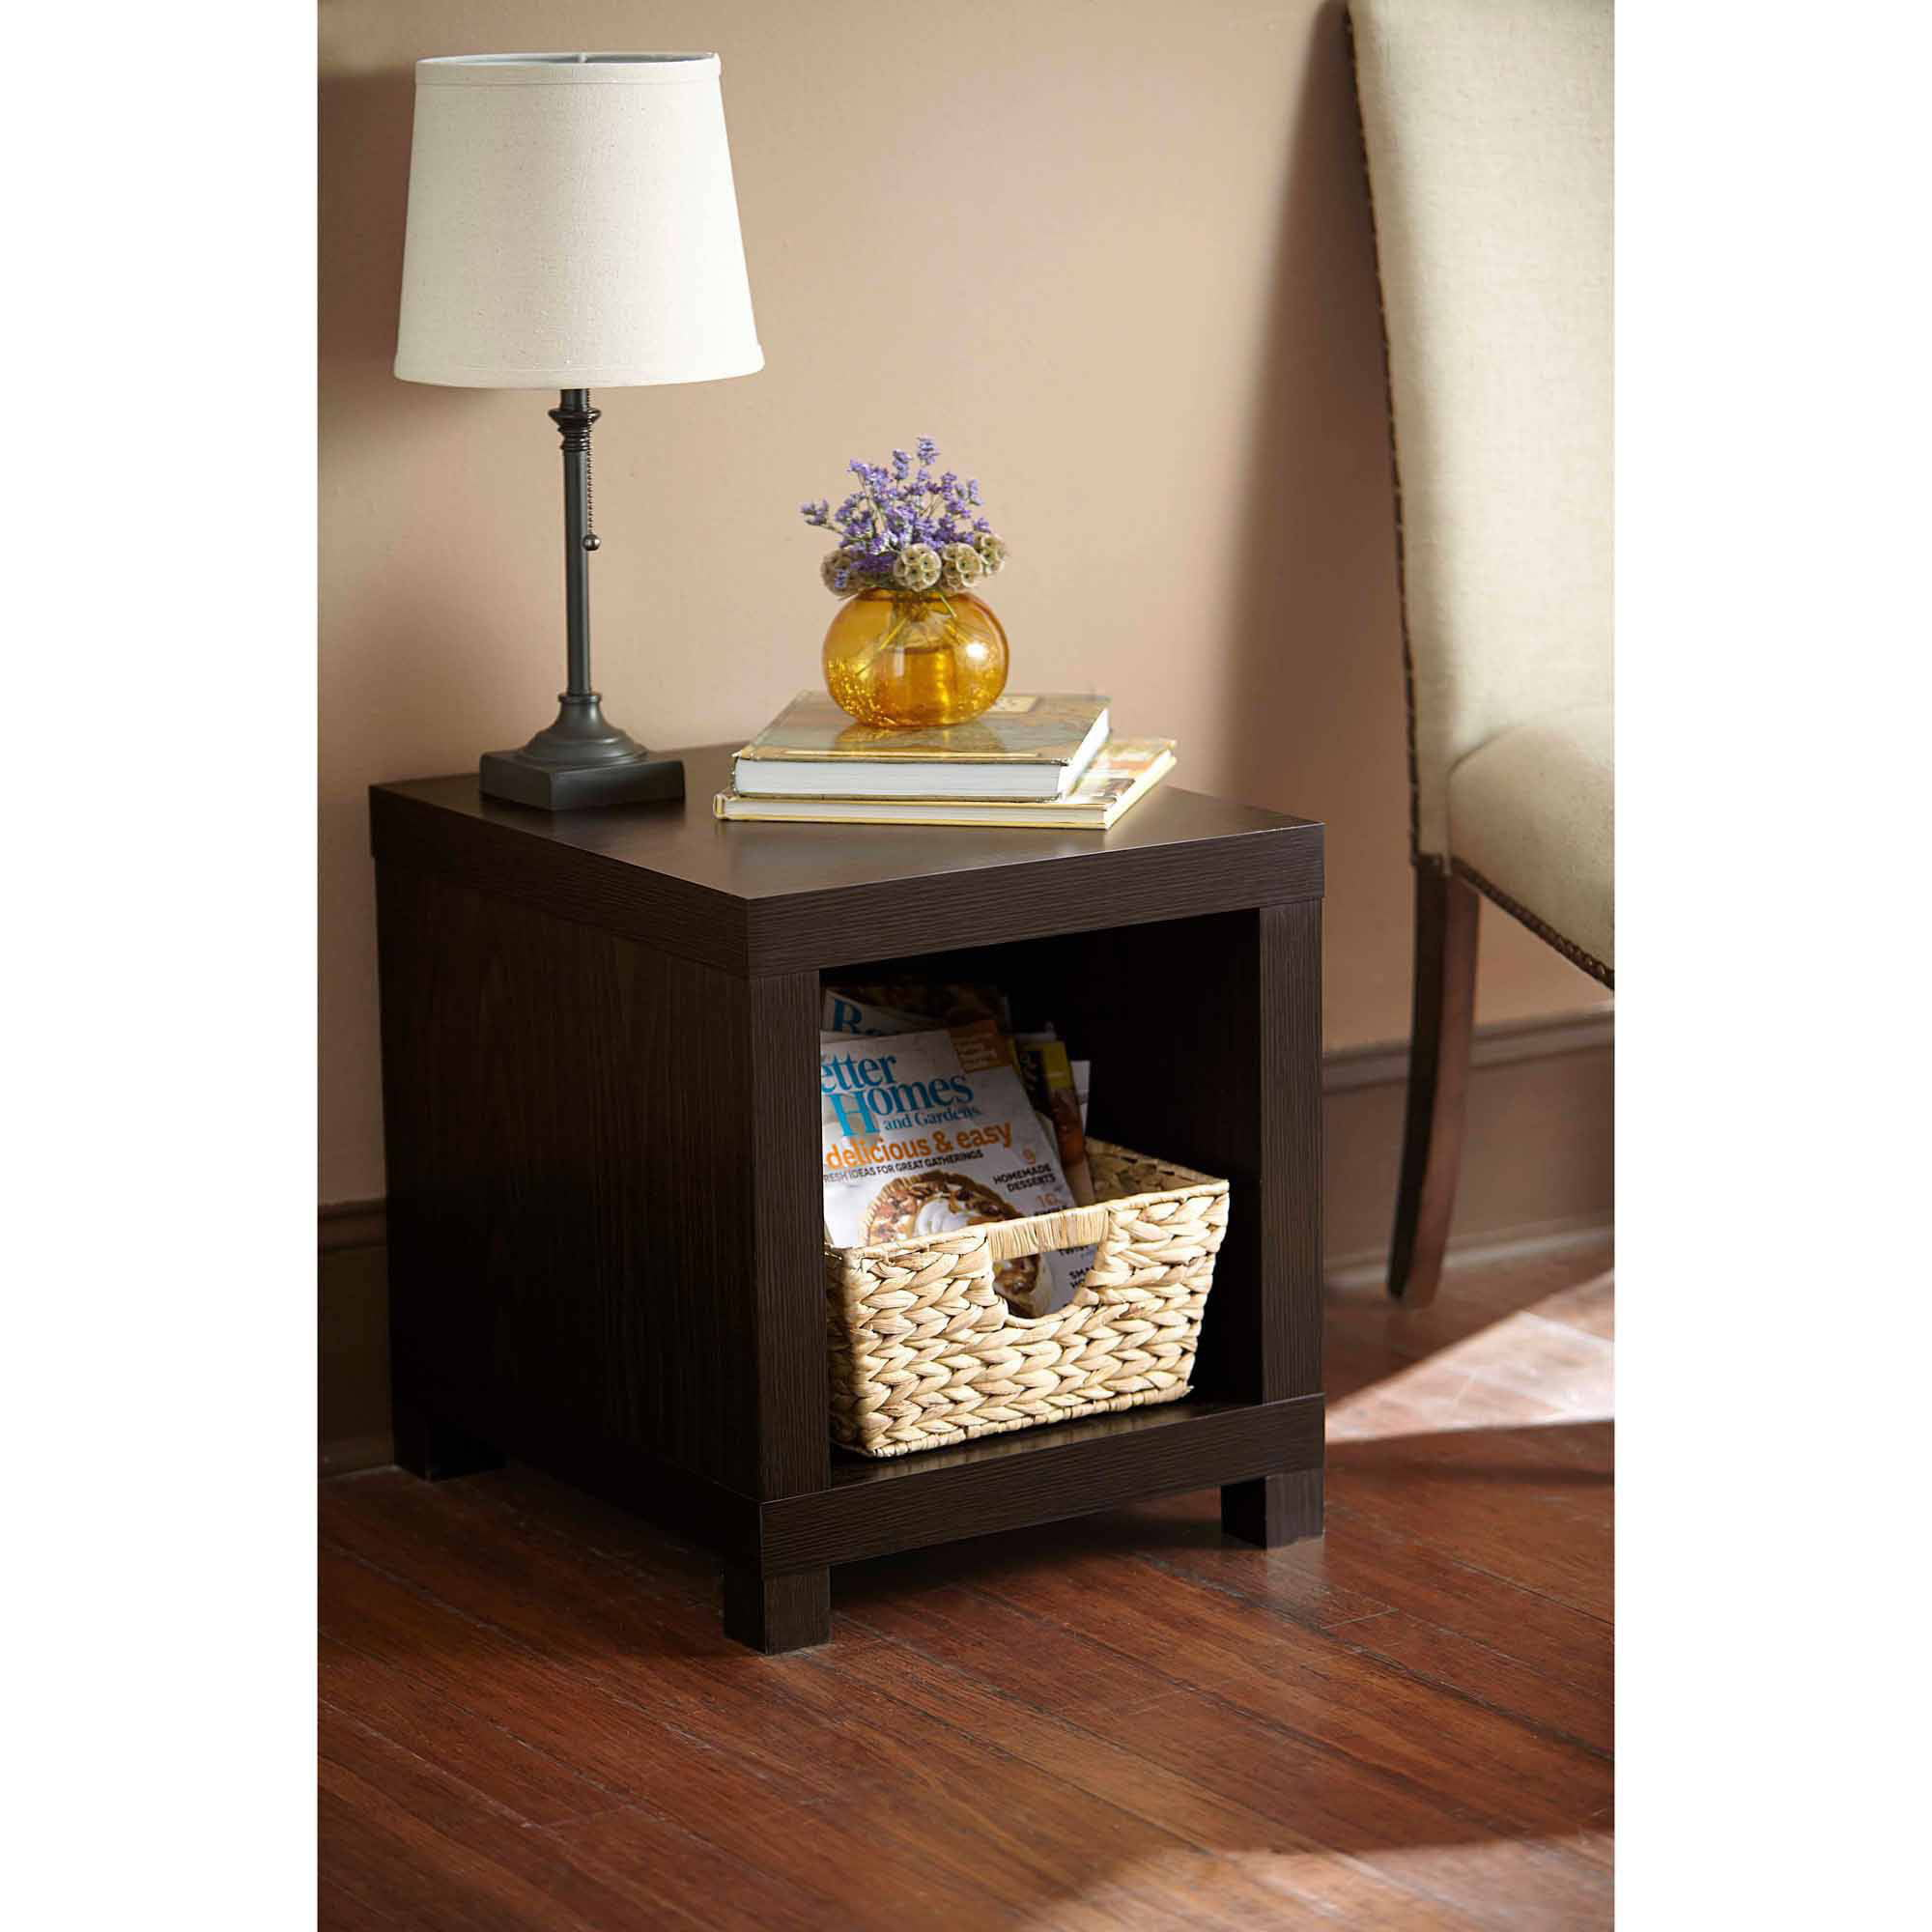 . Better Homes and Gardens Accent Table  Multiple Colors   Walmart com